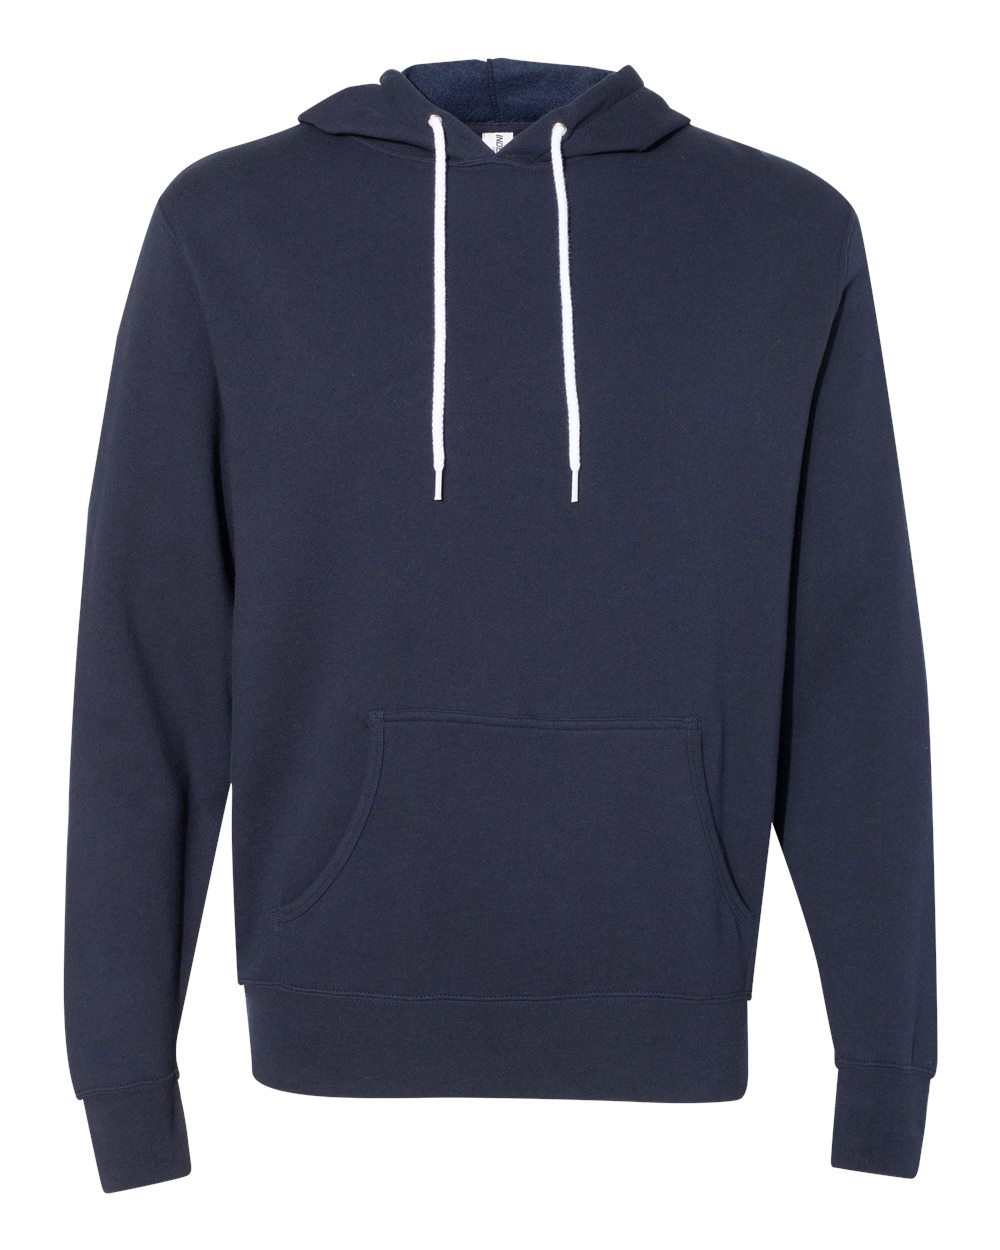 Independent-Trading-Co-Unisex-Hooded-Pullover-Blank-Plain-AFX90UN-up-to-3XL thumbnail 15